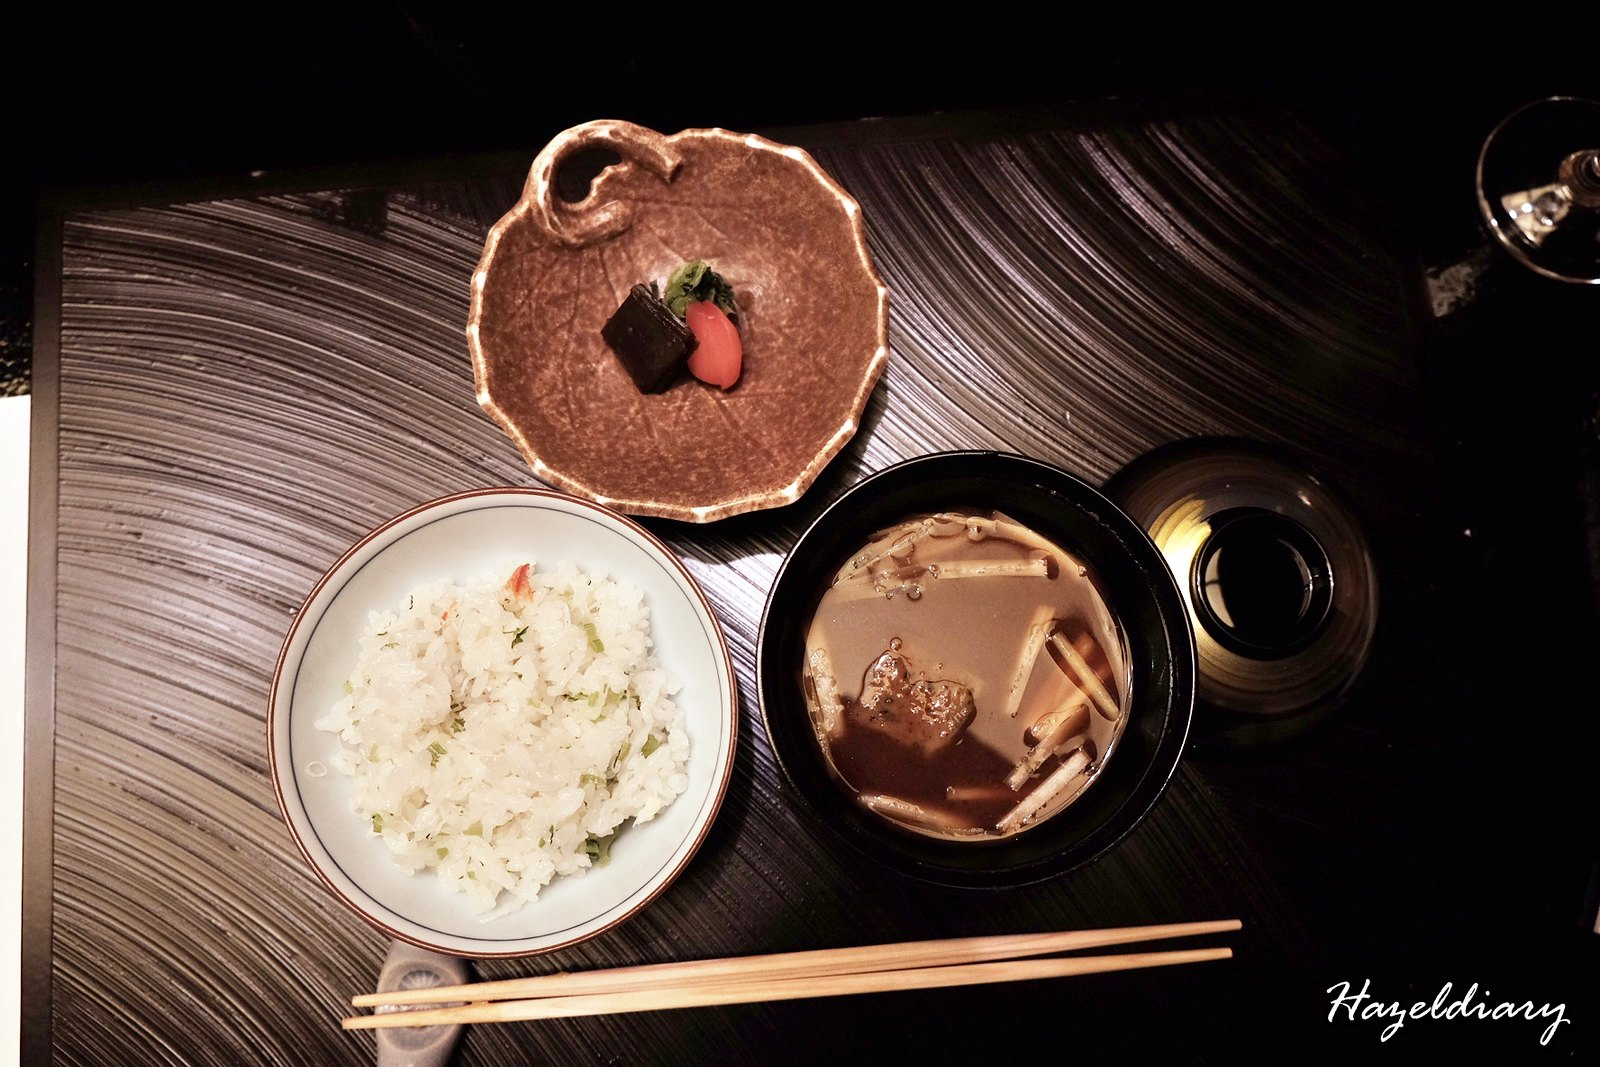 kaiseki soujuan keio plaza hotel tokyo-crab meat rice and miso soup